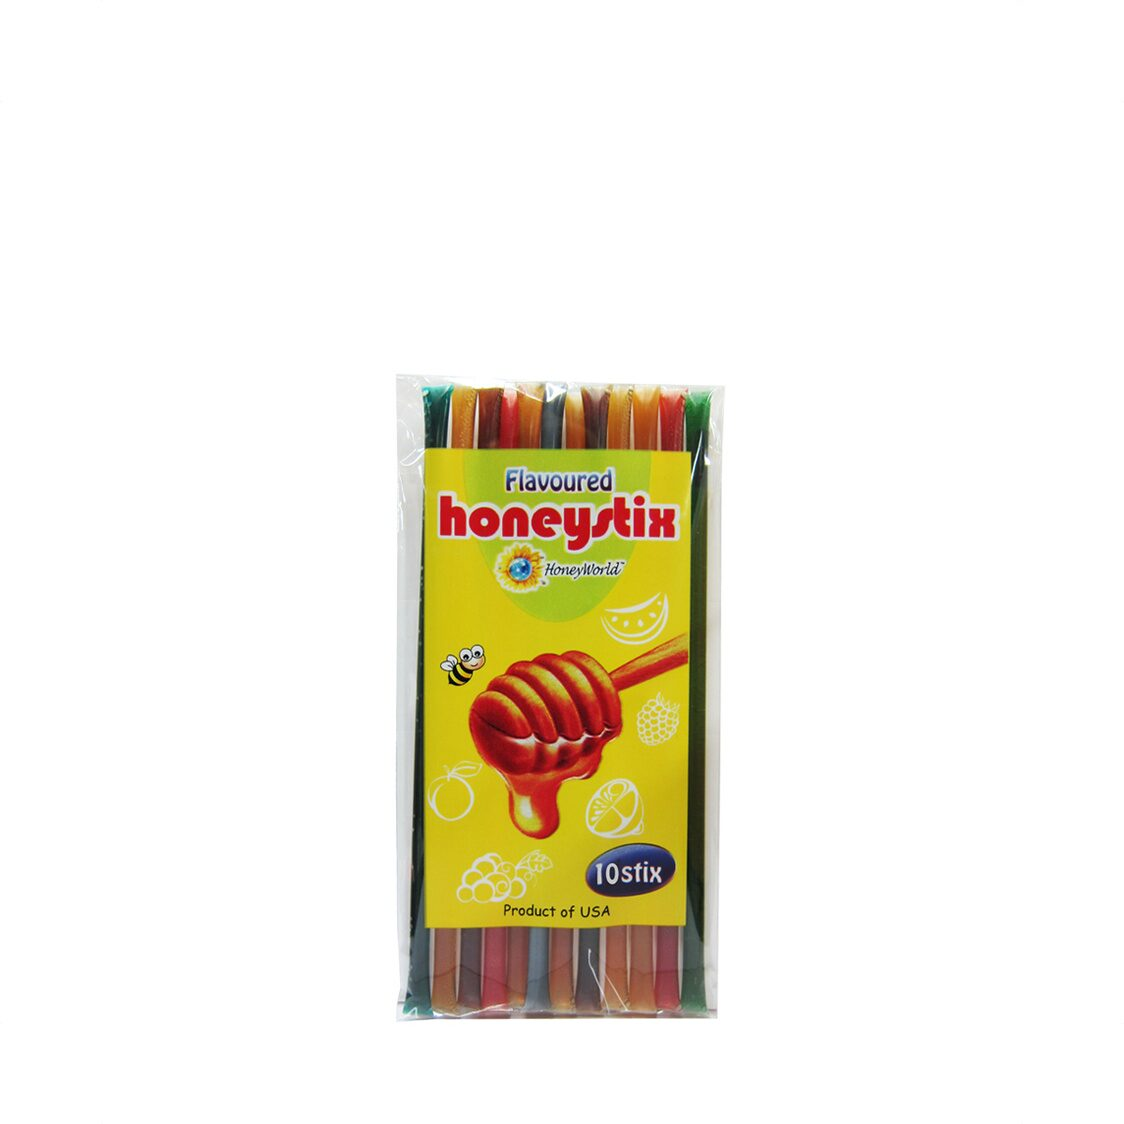 Honeystix 10stix Flavoured